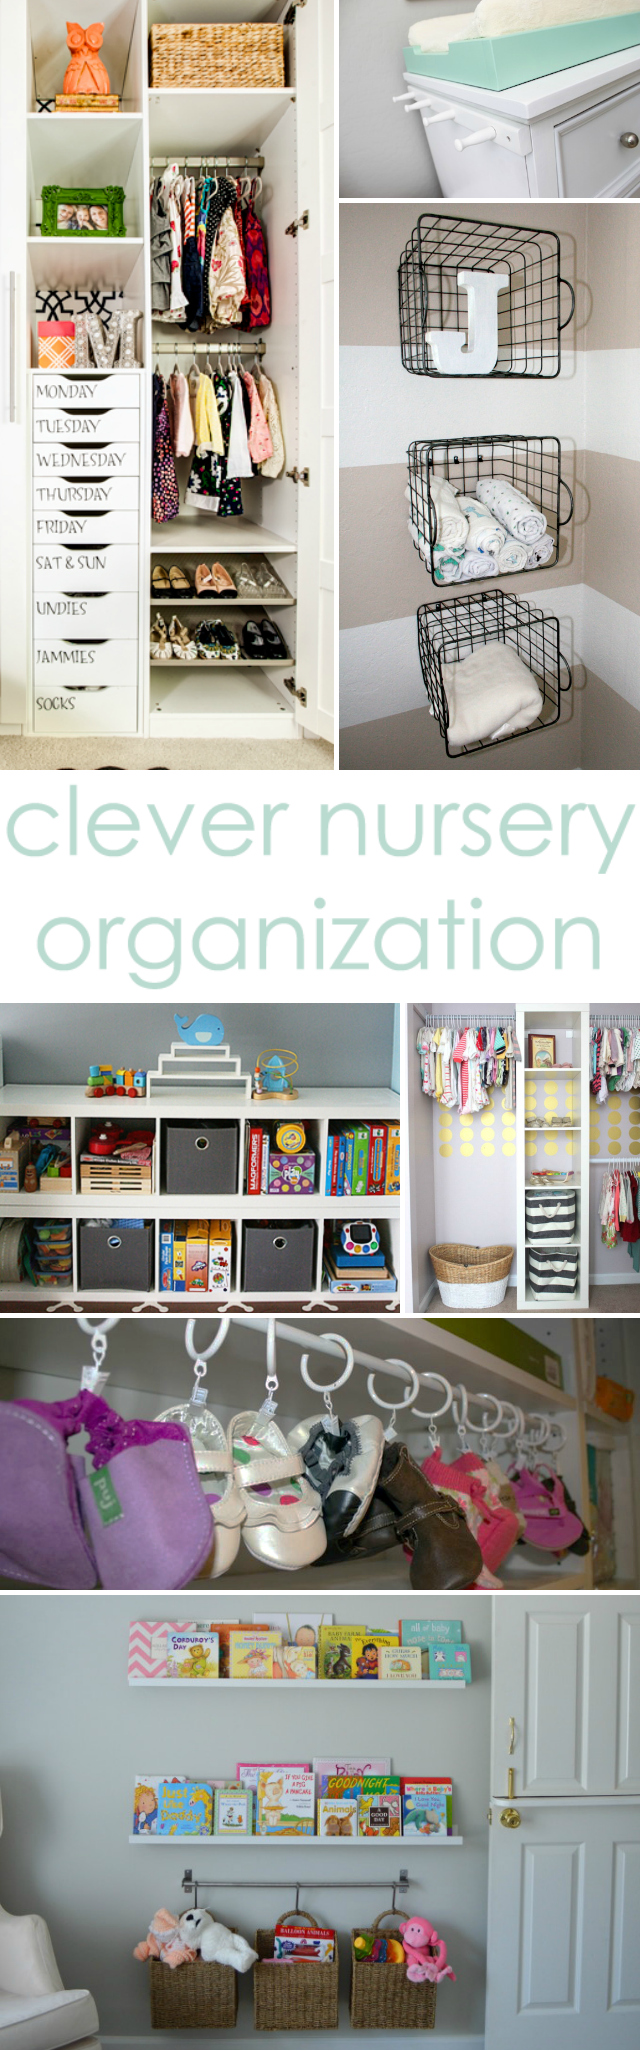 Clever Nursery Organization Ideas - Project Nursery